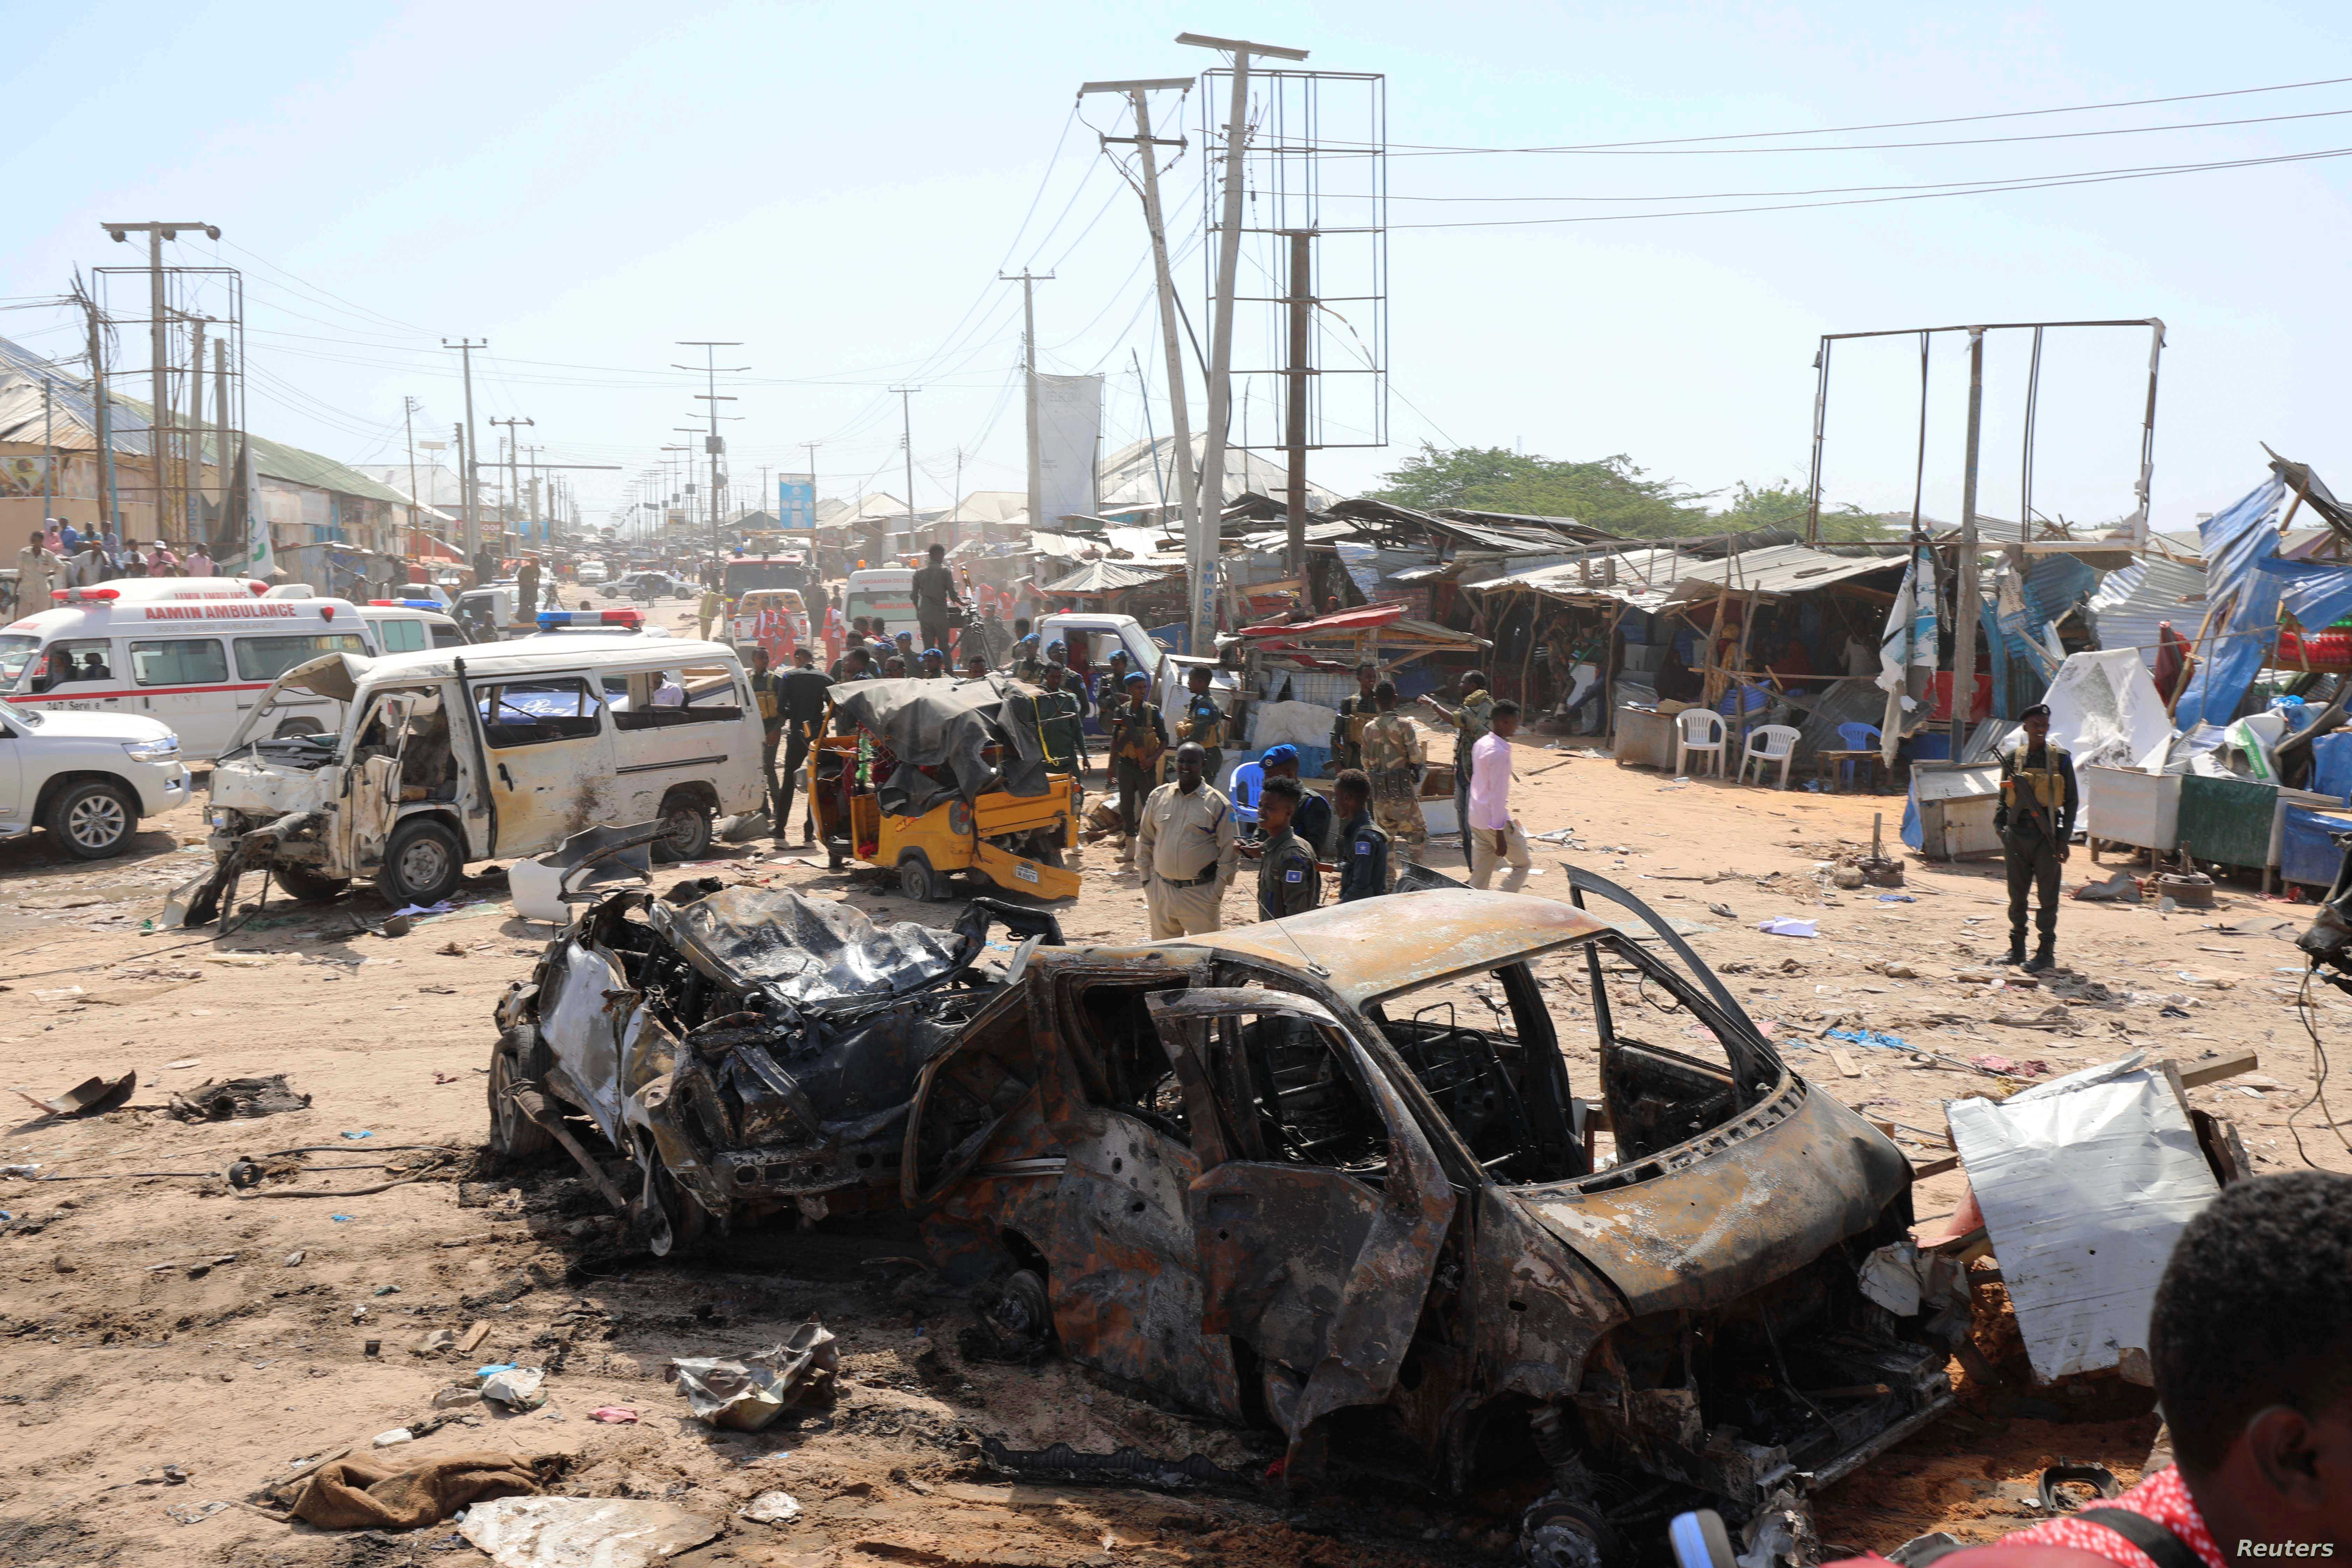 FILE - A general view shows the scene of a car bomb explosion at a checkpoint in Mogadishu, Somalia, Dec. 28, 2019.